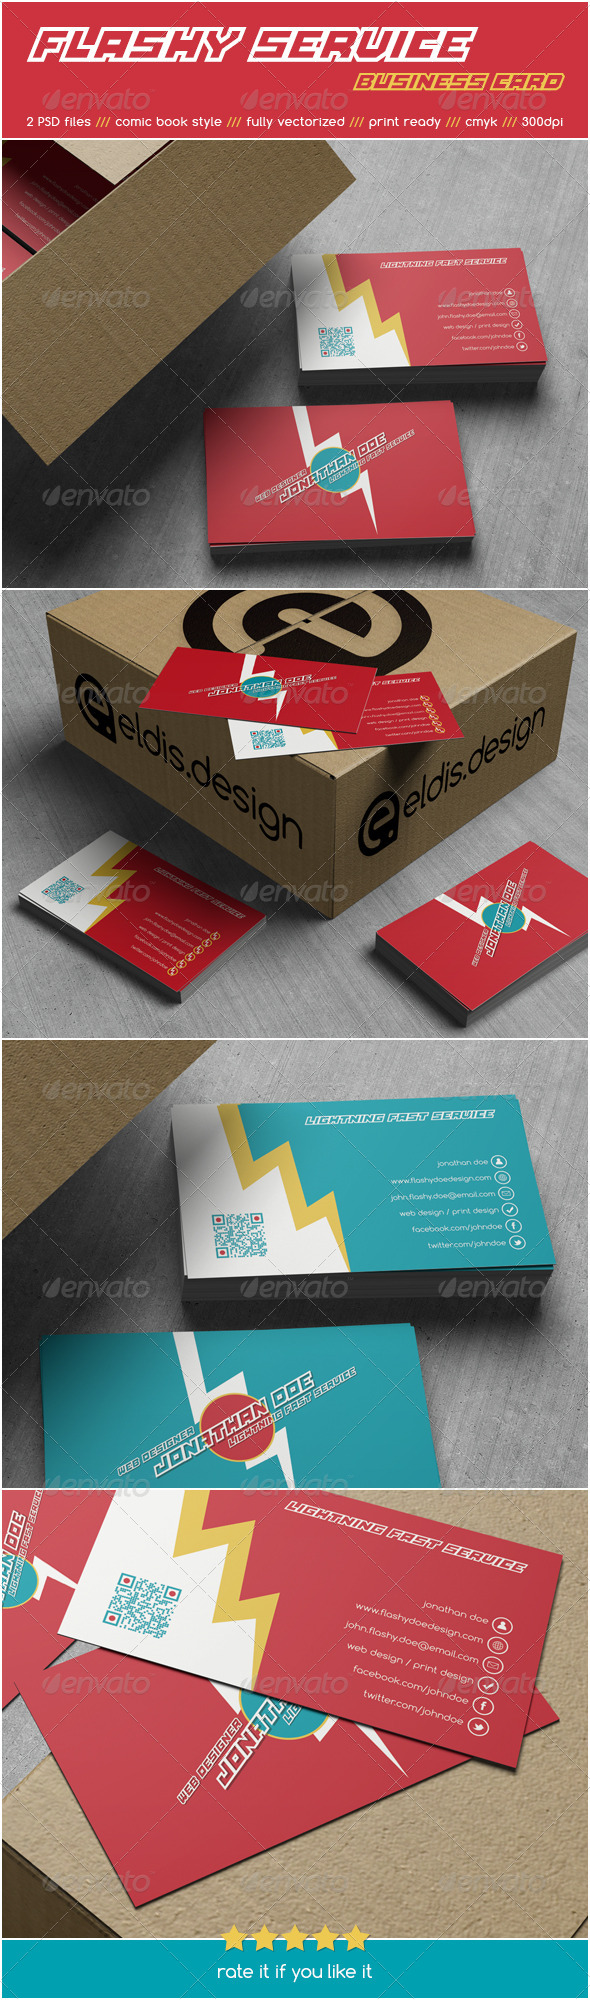 Flashy Service Business Card - Retro/Vintage Business Cards